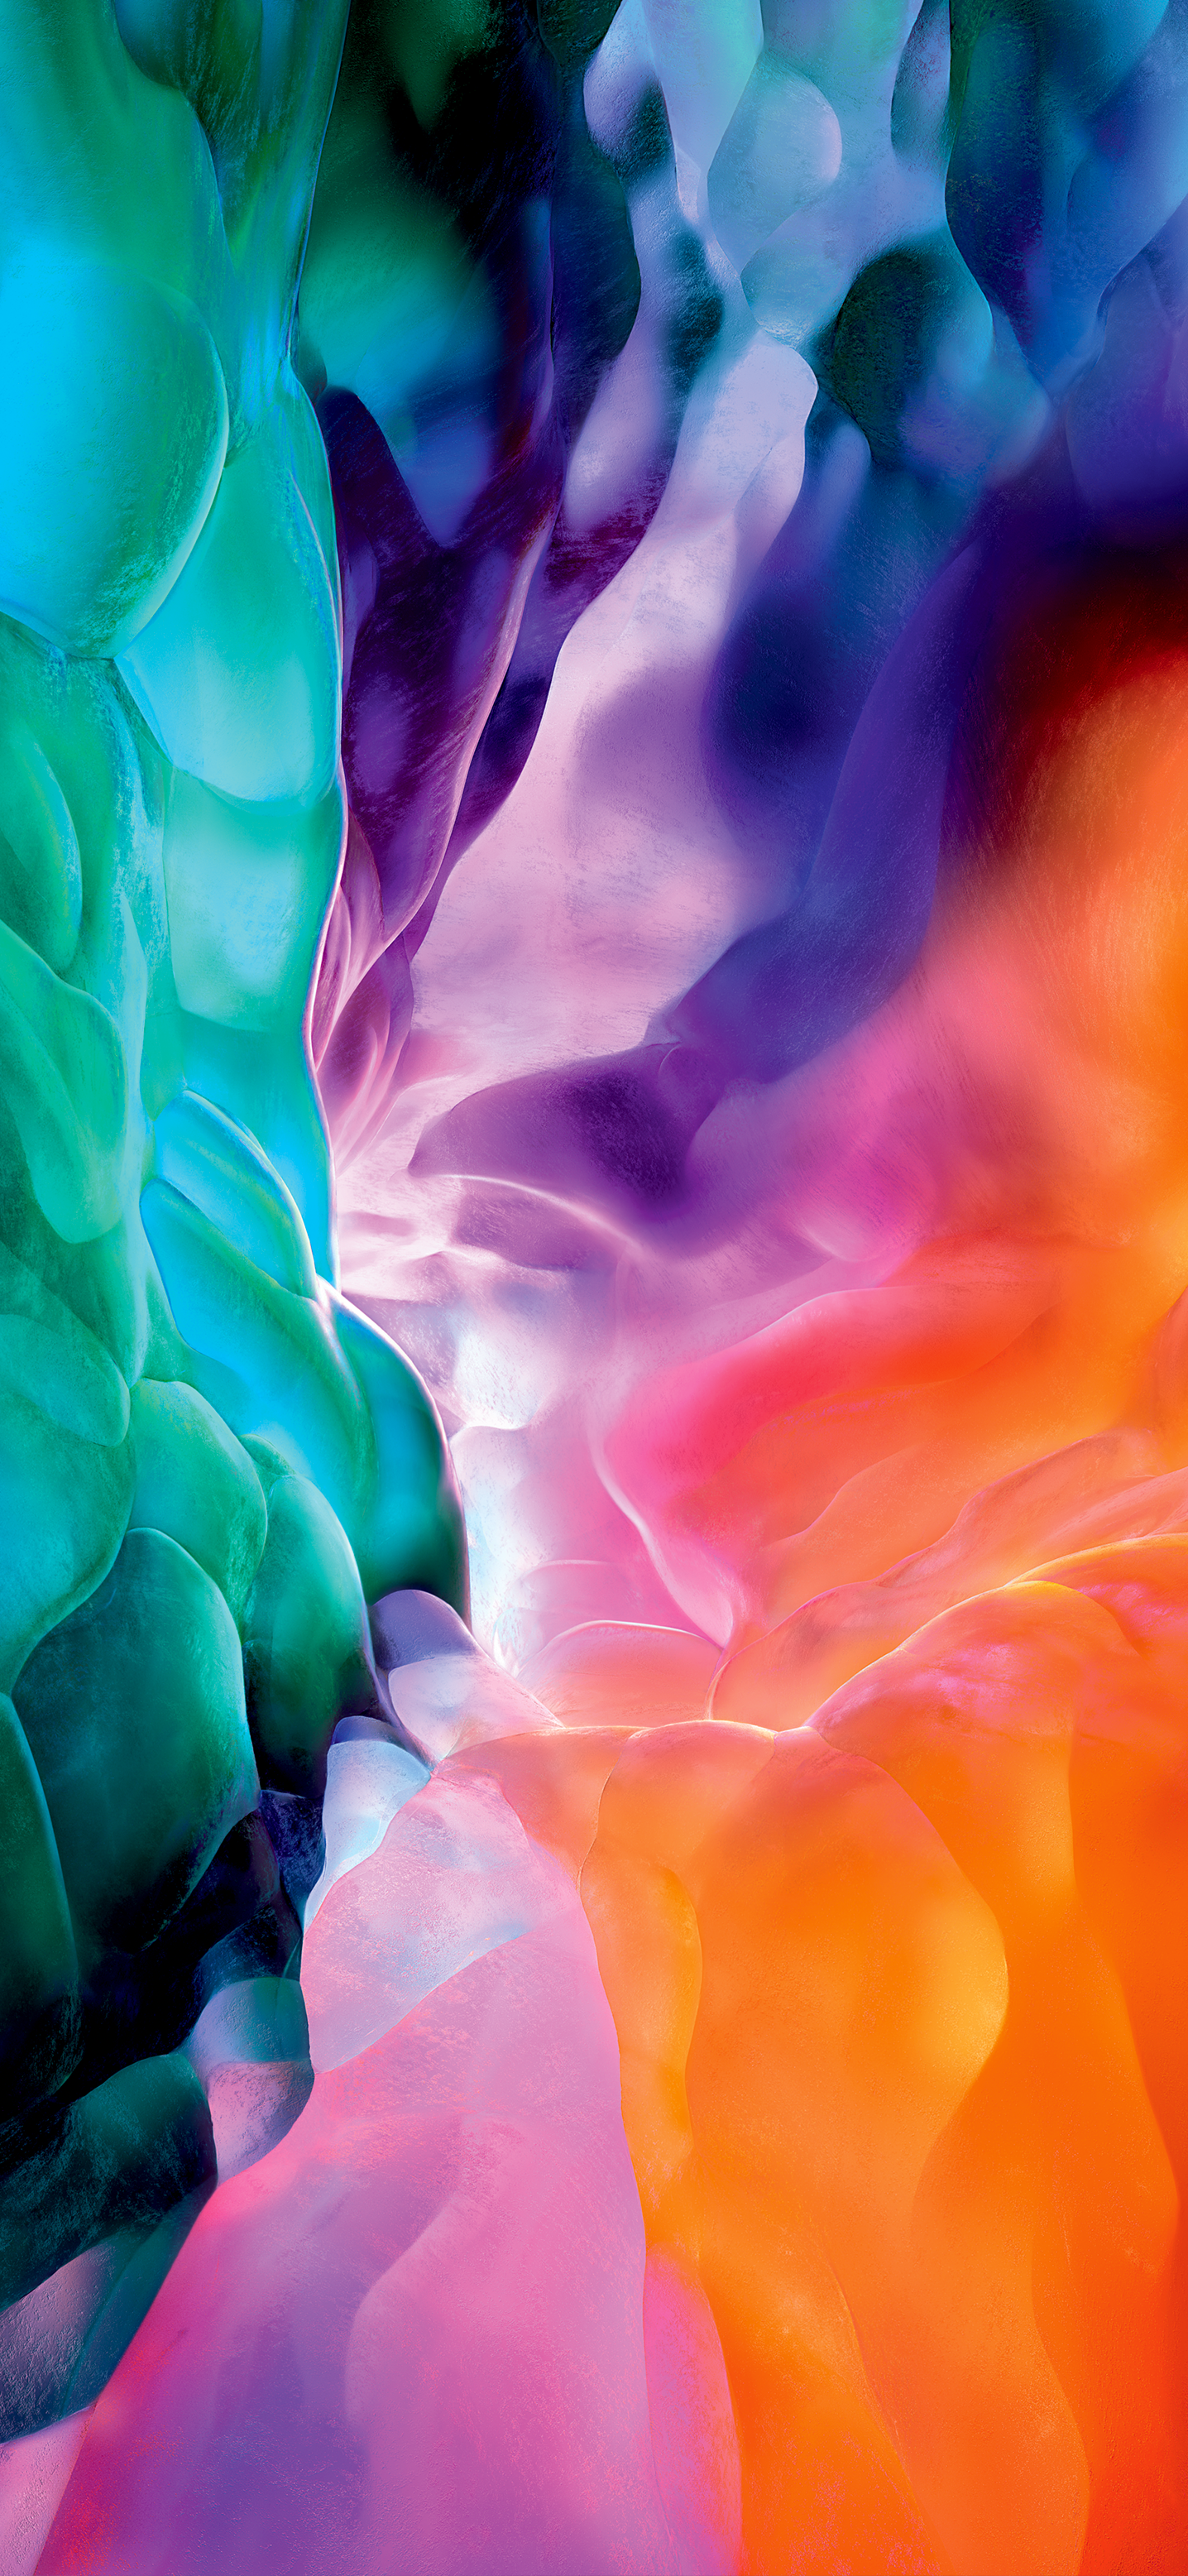 Download iPad Pro 2020 Wallpapers [FHD] Official in 2020 1436x3113